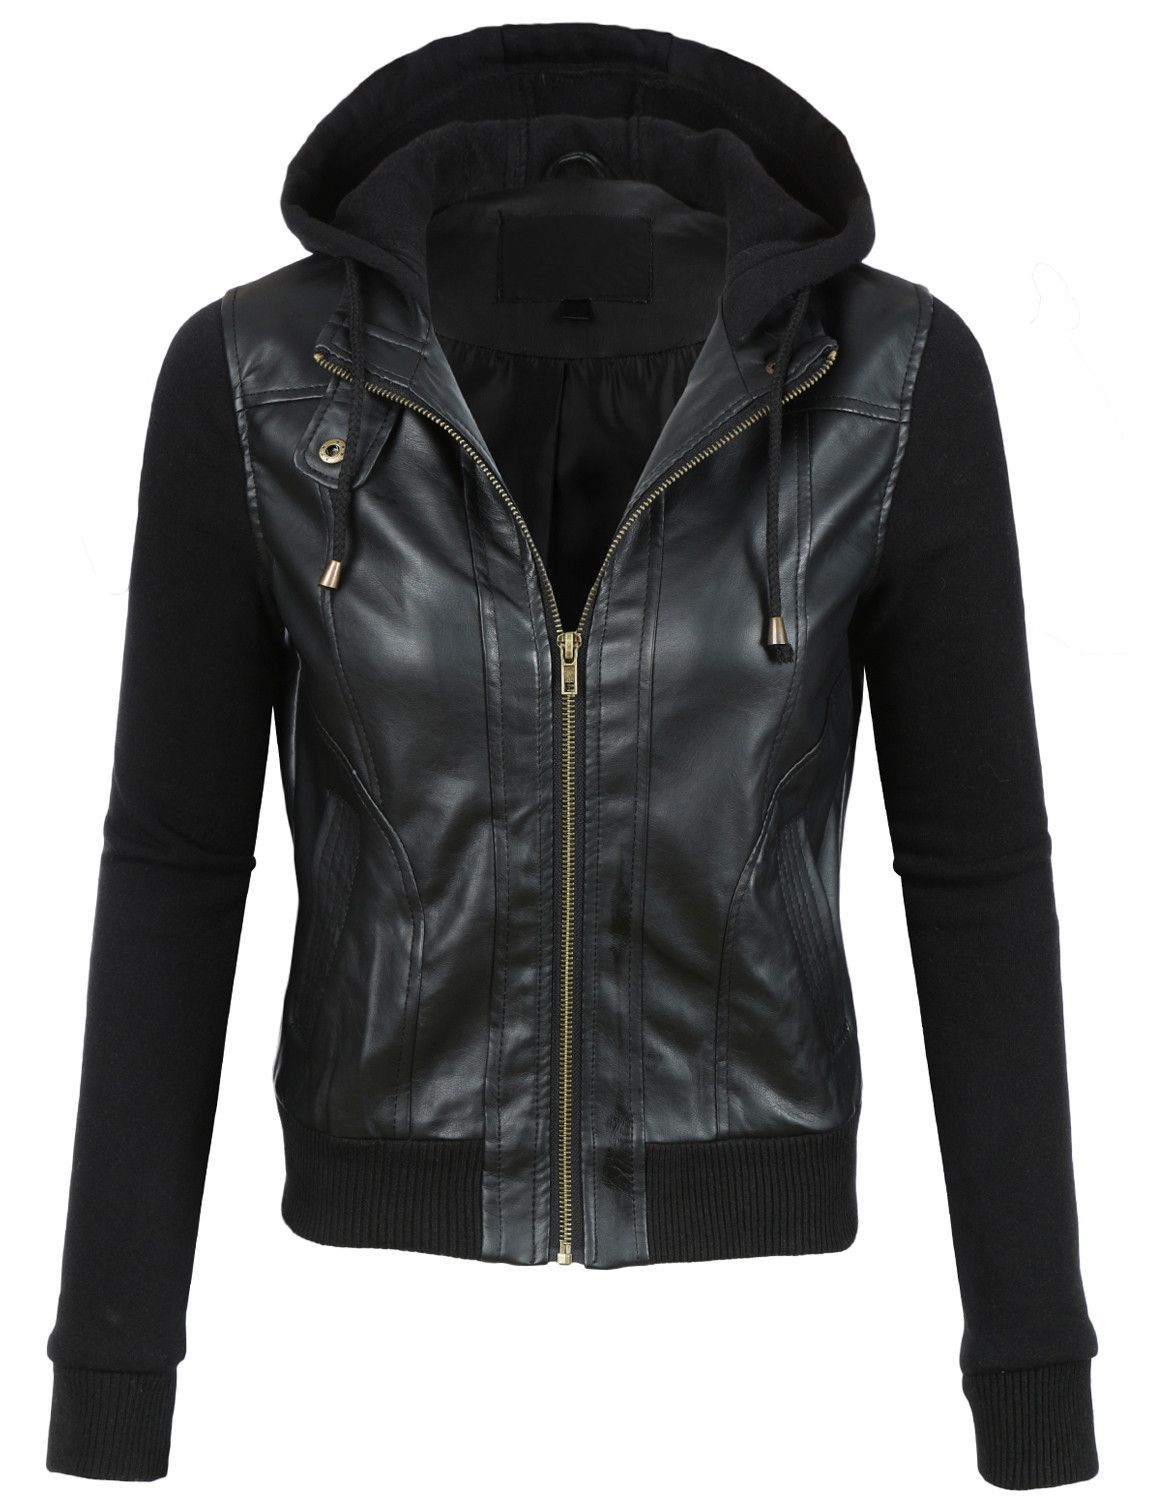 Le3no Womens Faux Leather Moto Bomber Jacket With Fleece Hoodie Leather Jackets Women Clothes Long Sleeve Outerwear [ 1500 x 1150 Pixel ]